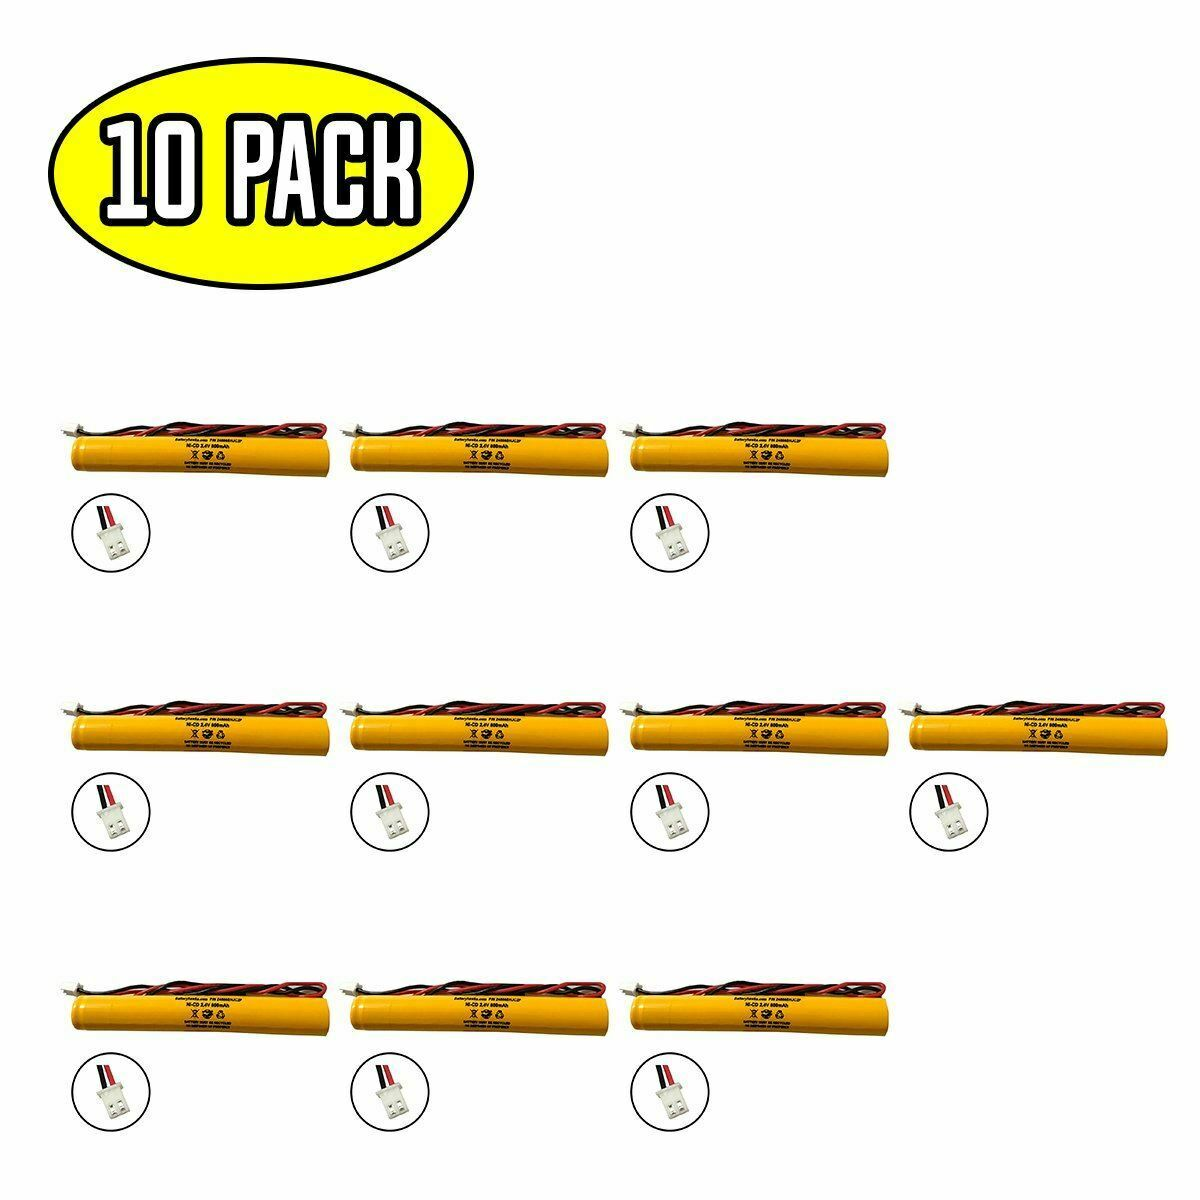 (10 pack) 2.4v 800mAh Ni-CD Battery Pack Replacement for Emergency / Exit Light